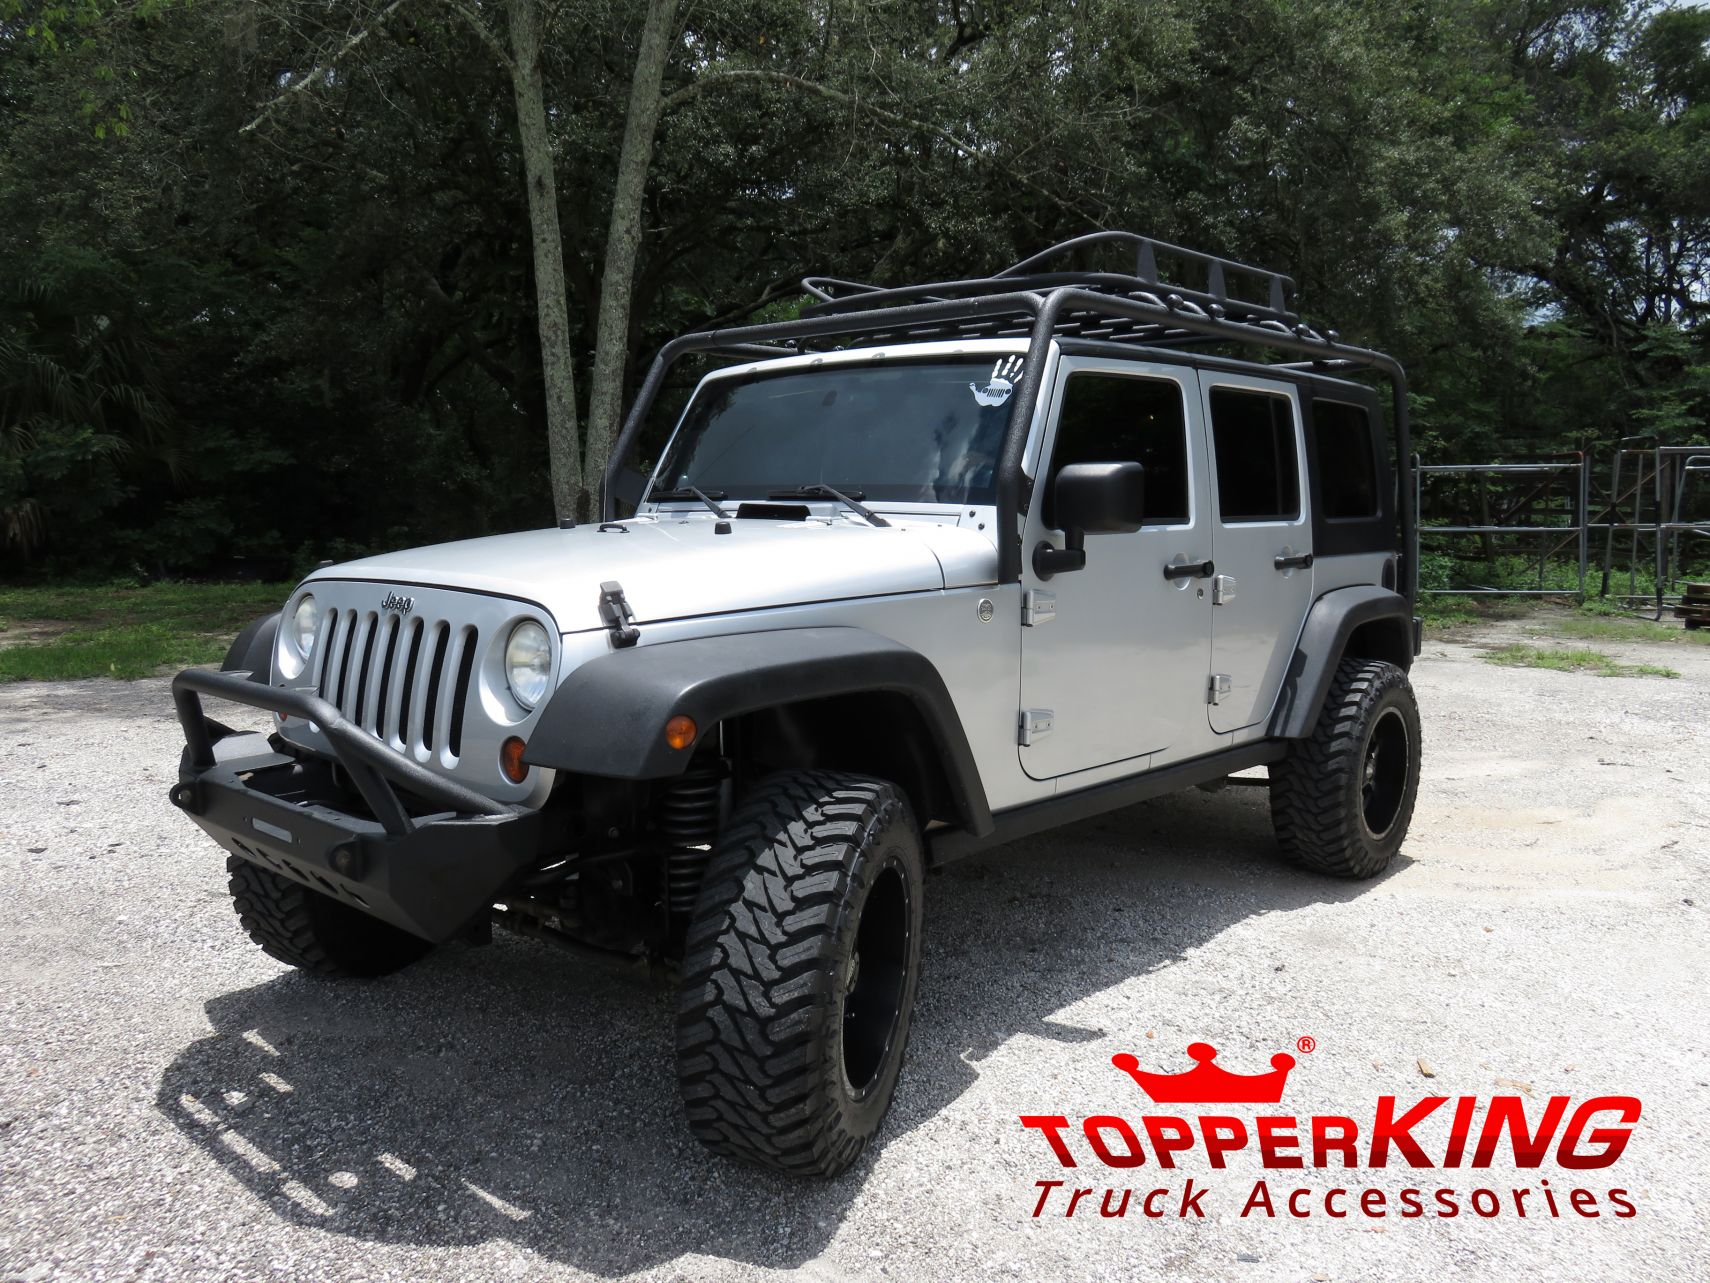 2015 jeep wrangler smittybilt rack topperking topperking providing all of tampa bay with. Black Bedroom Furniture Sets. Home Design Ideas